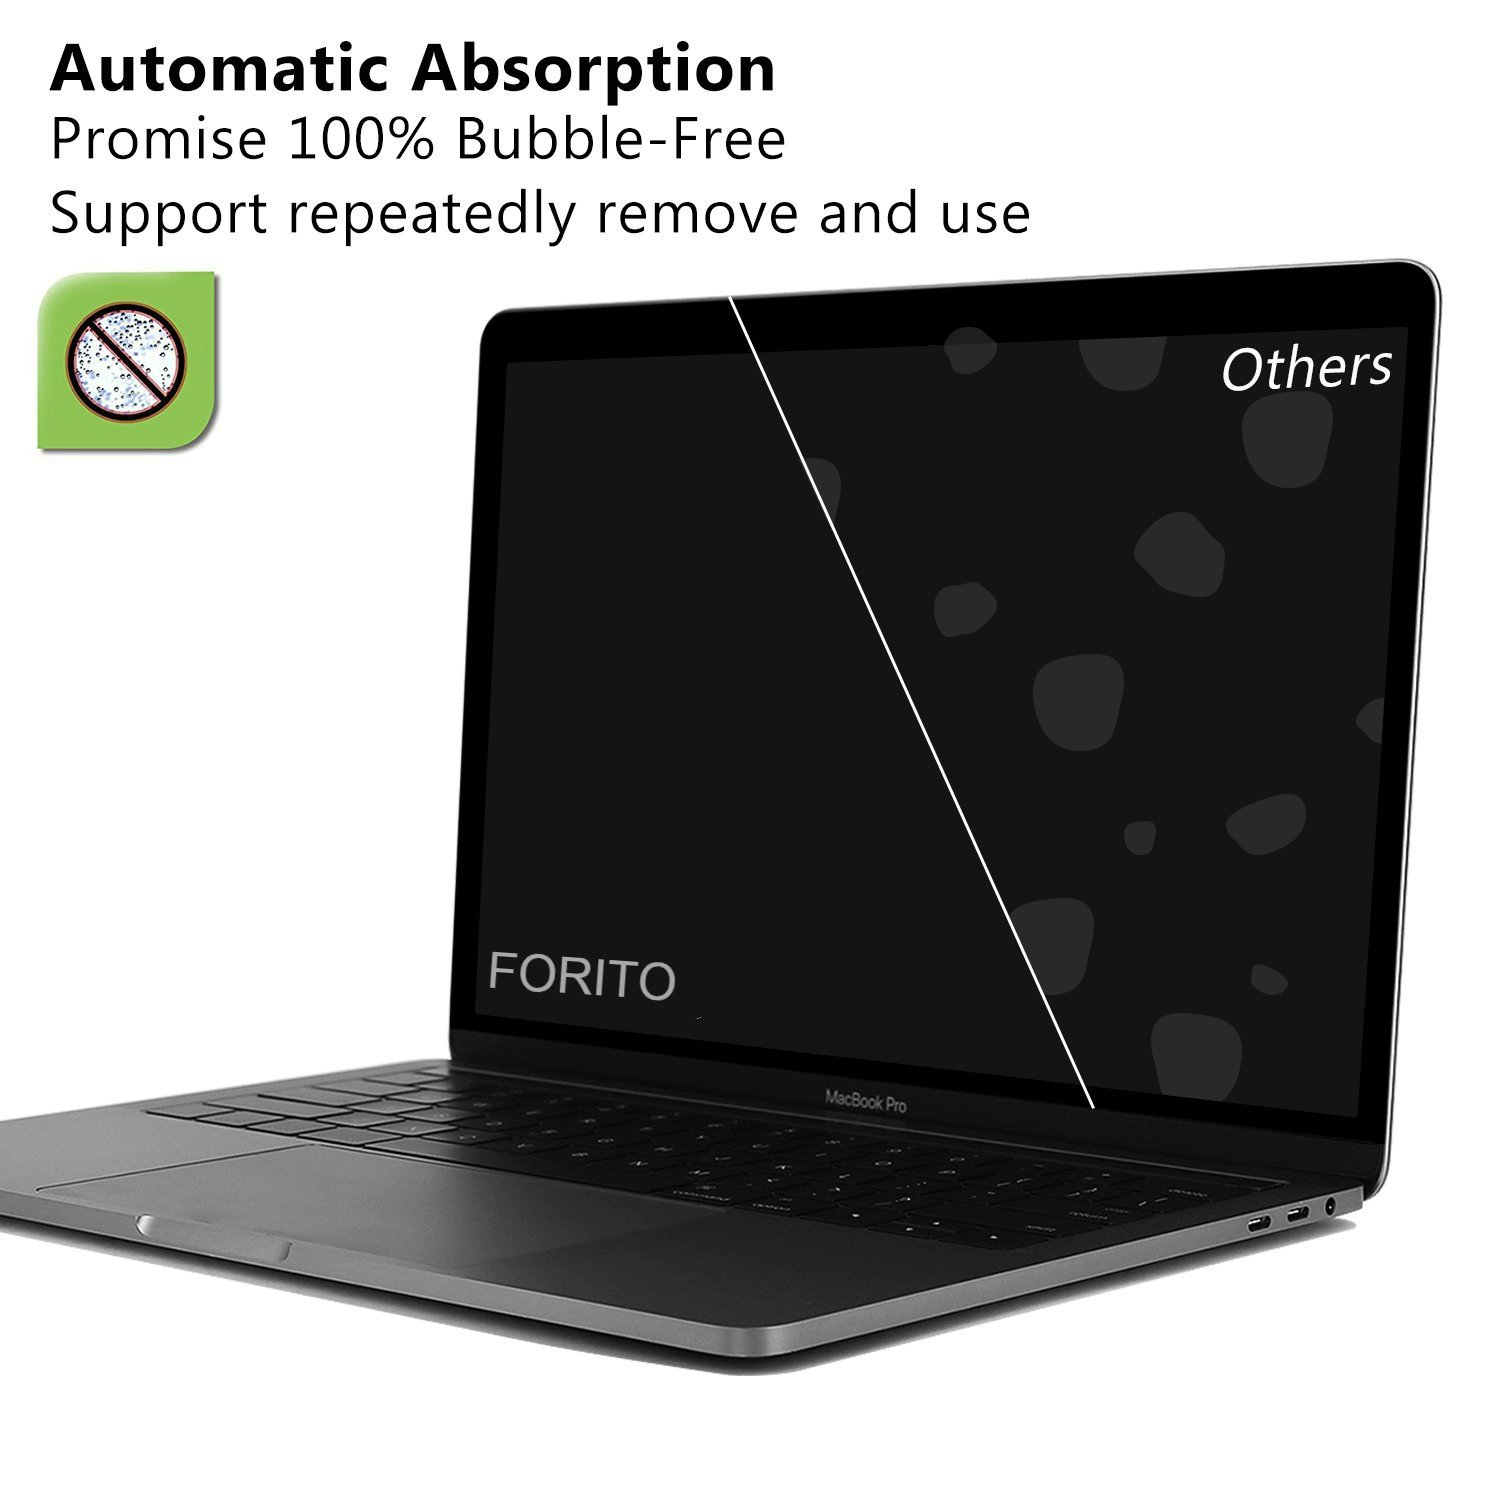 Bubble Free Removable Screen Protector for MacBook Pro 13 Inch 2019 2018 2017 2016 Model A1706 A1708 A1989 with or without Touch